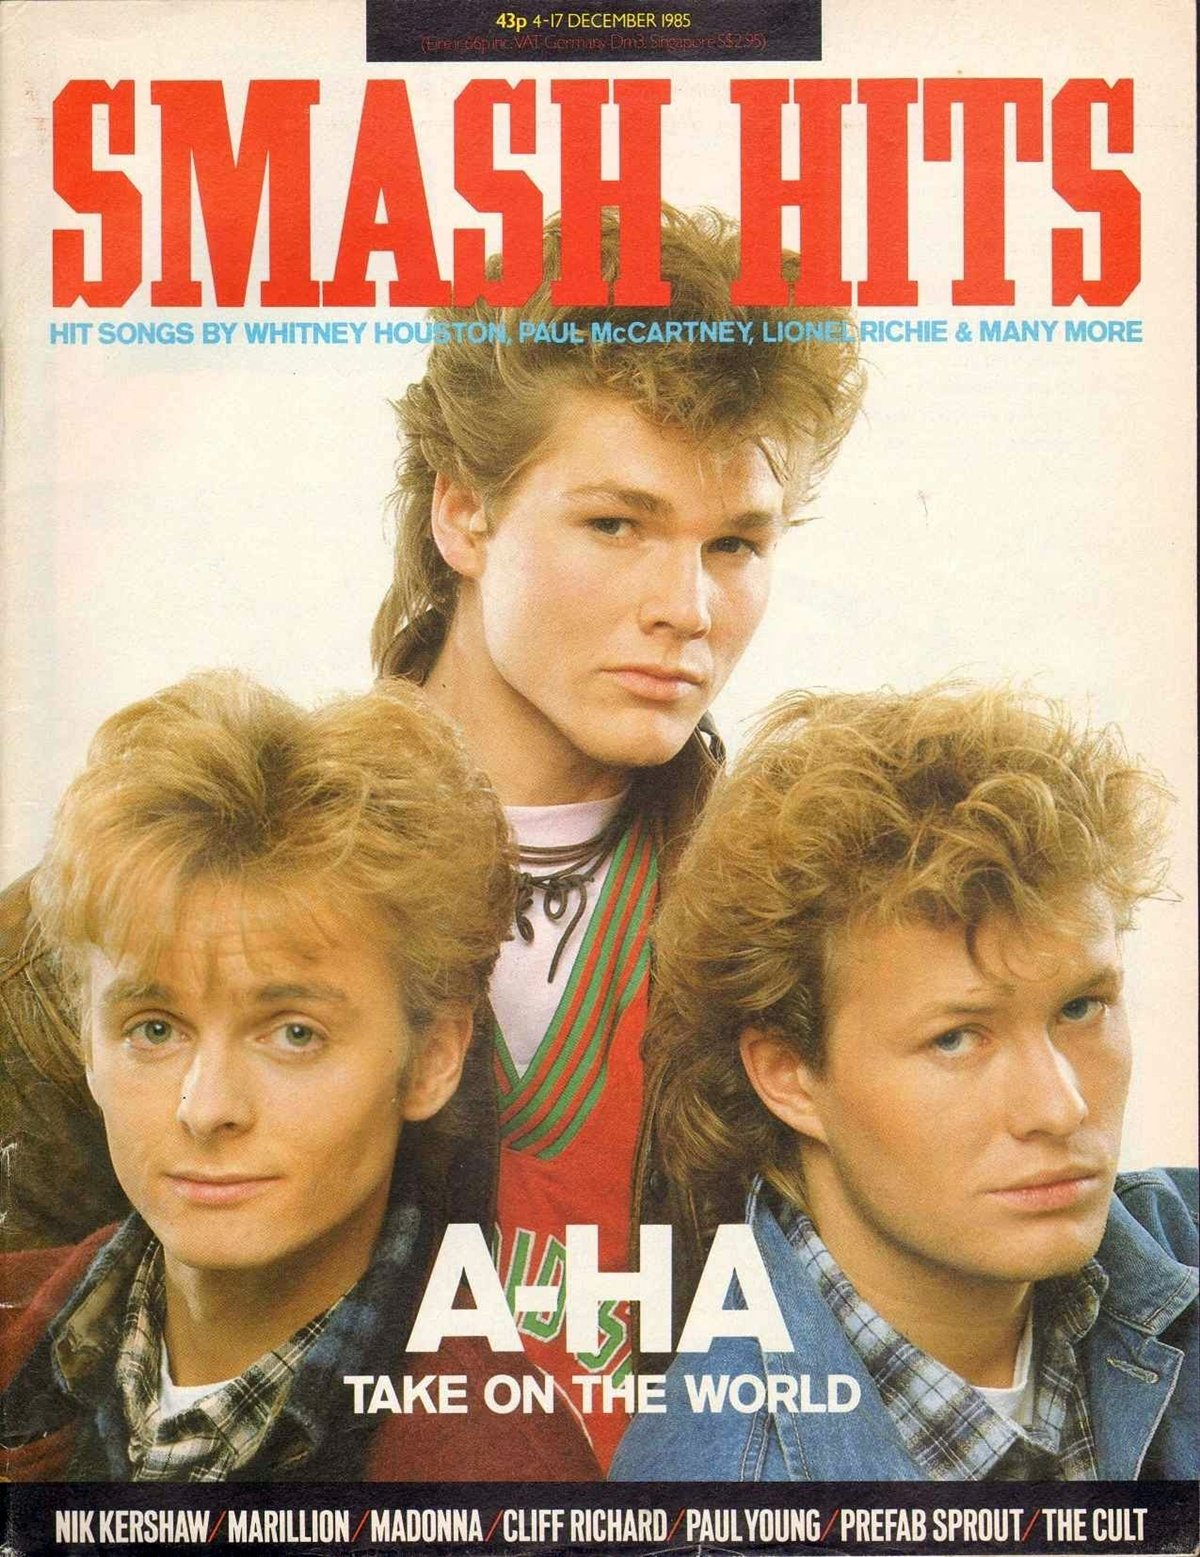 9 2 16 Smash Hits Covers That Will Take You Right Back To Your Youth